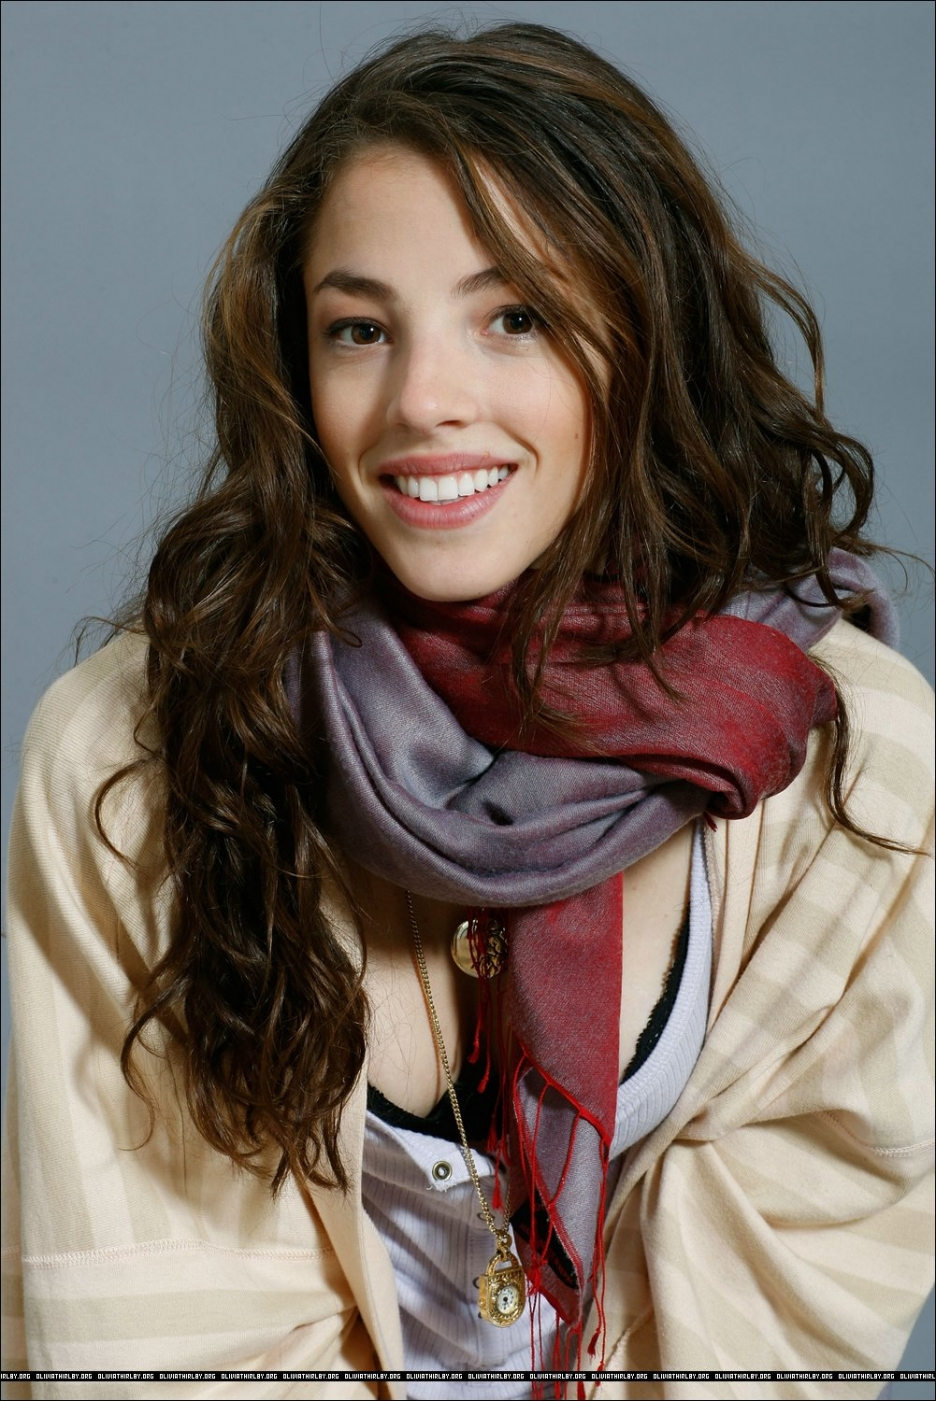 The Movie Trivia: Olivia Thirlby Trivia